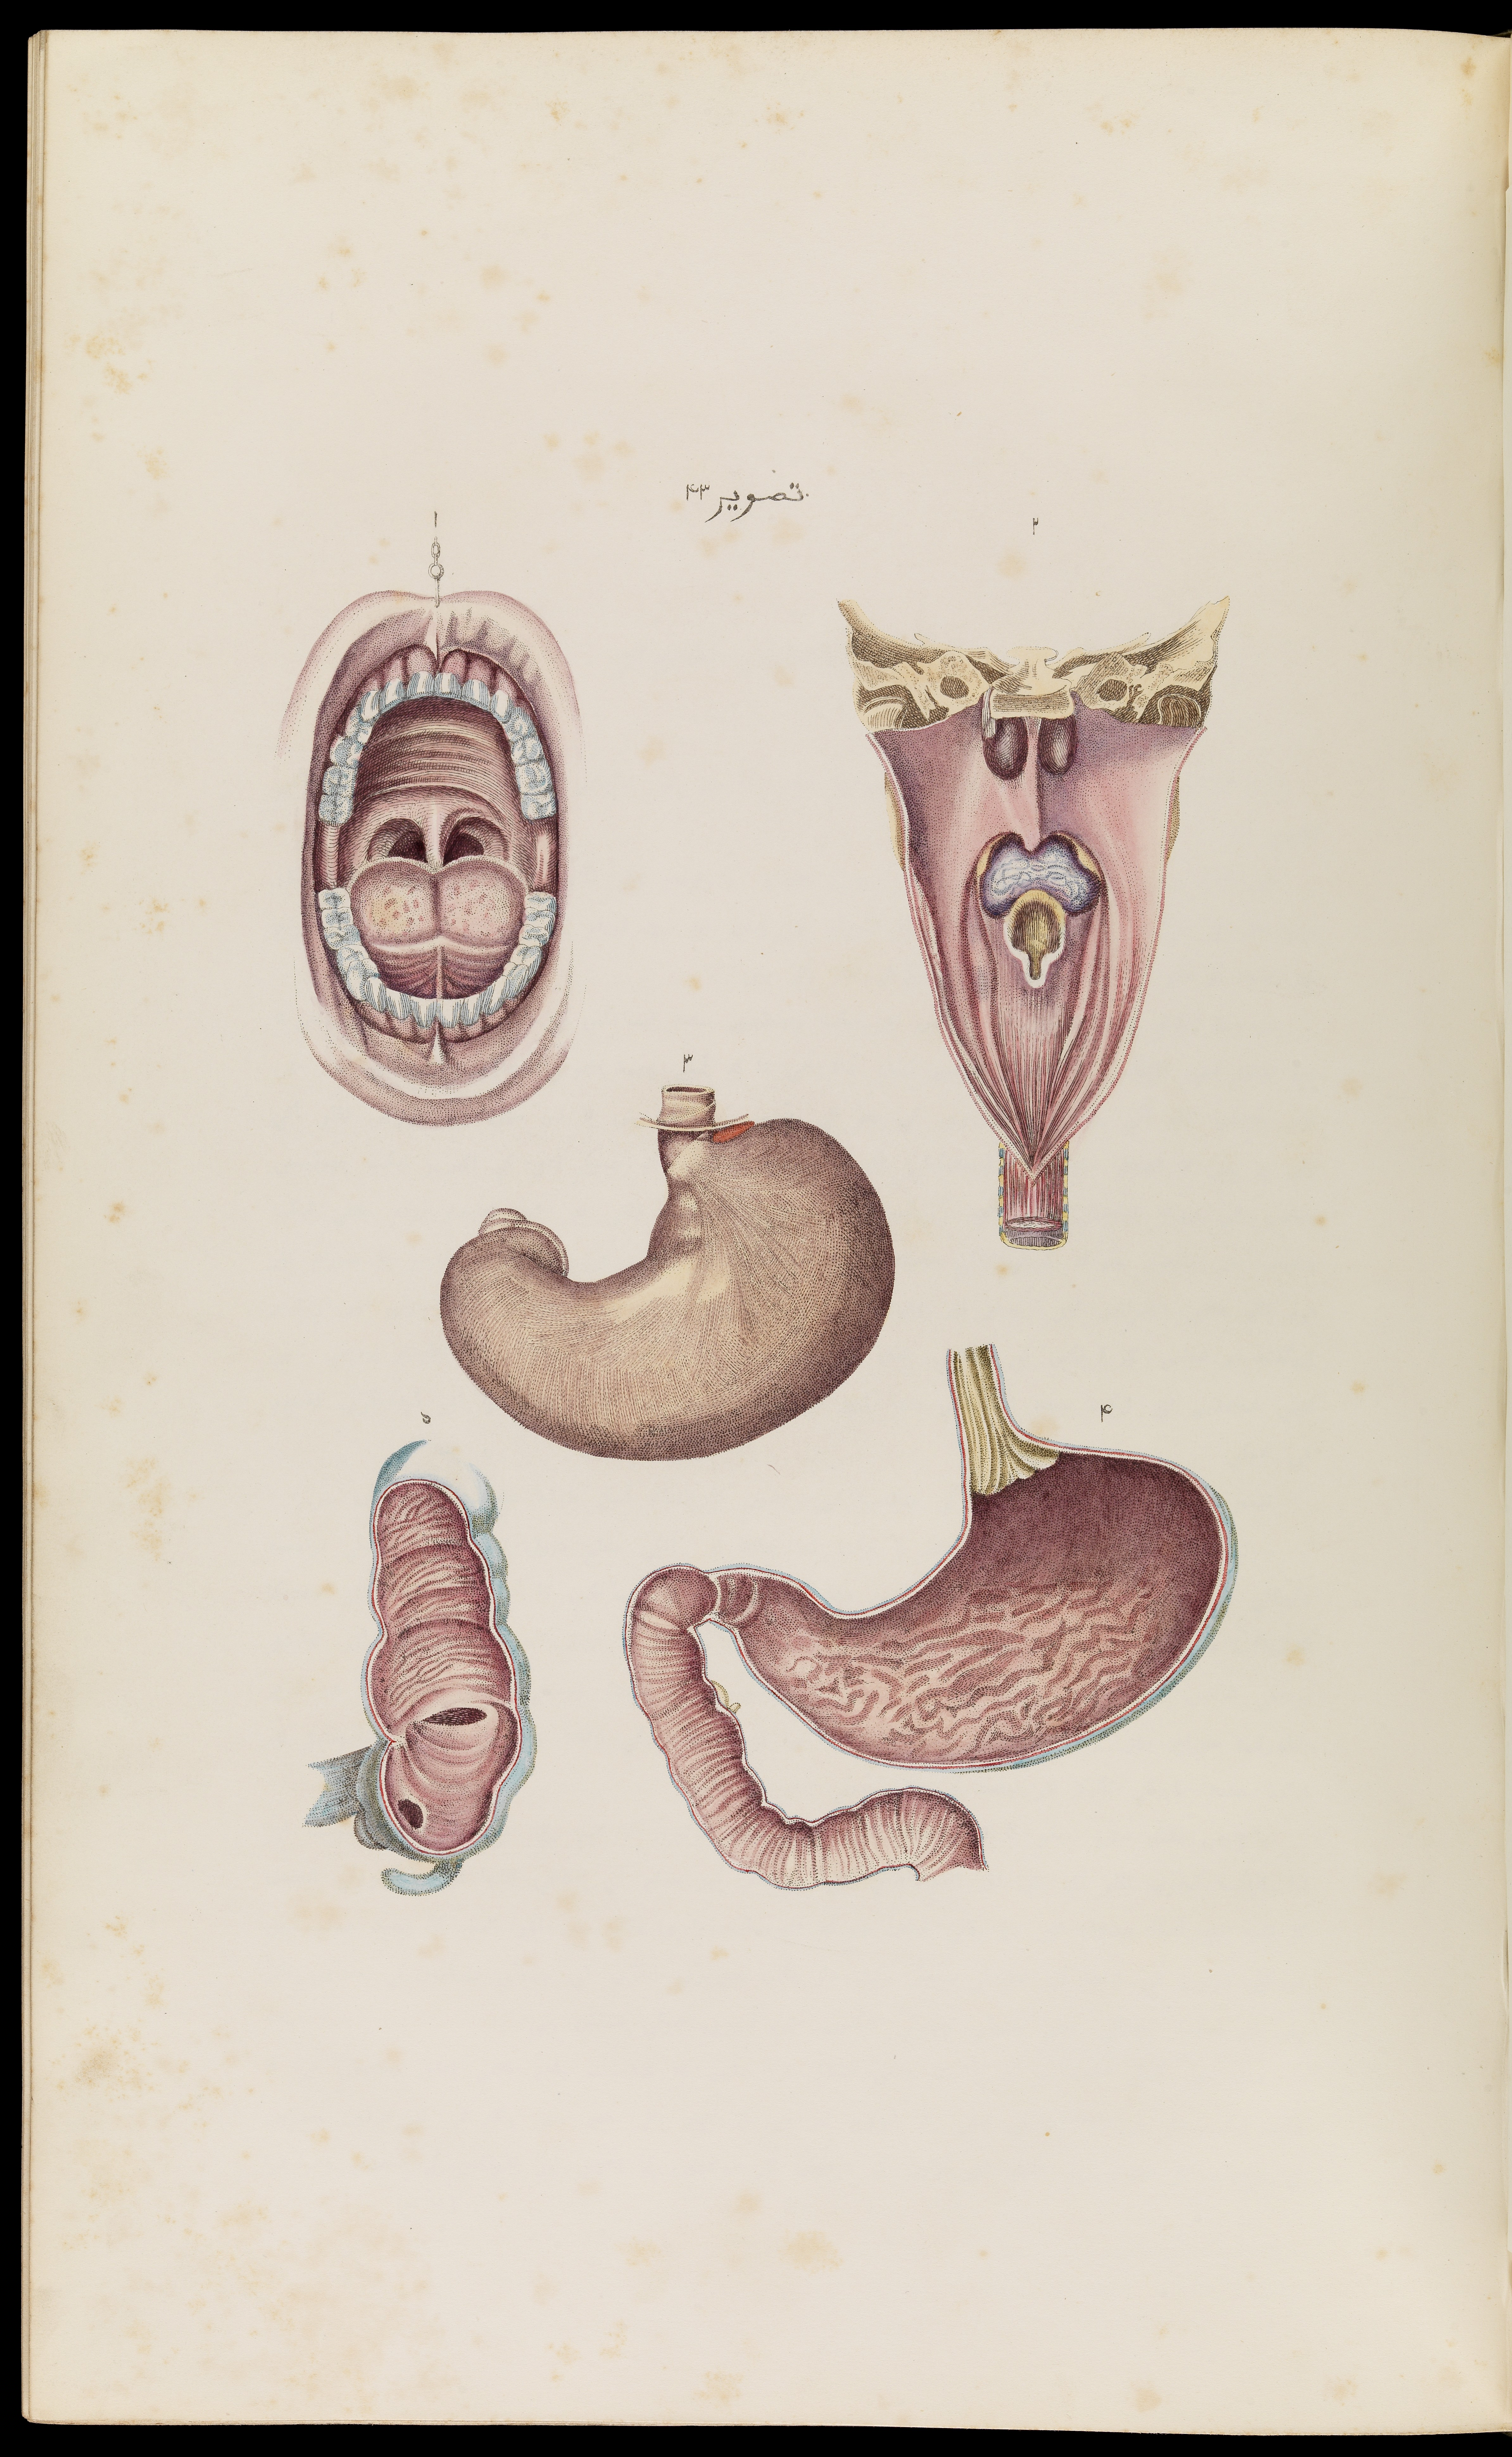 Filepage From An Atlas Of Anatomical Plates Wellcome L0067255g